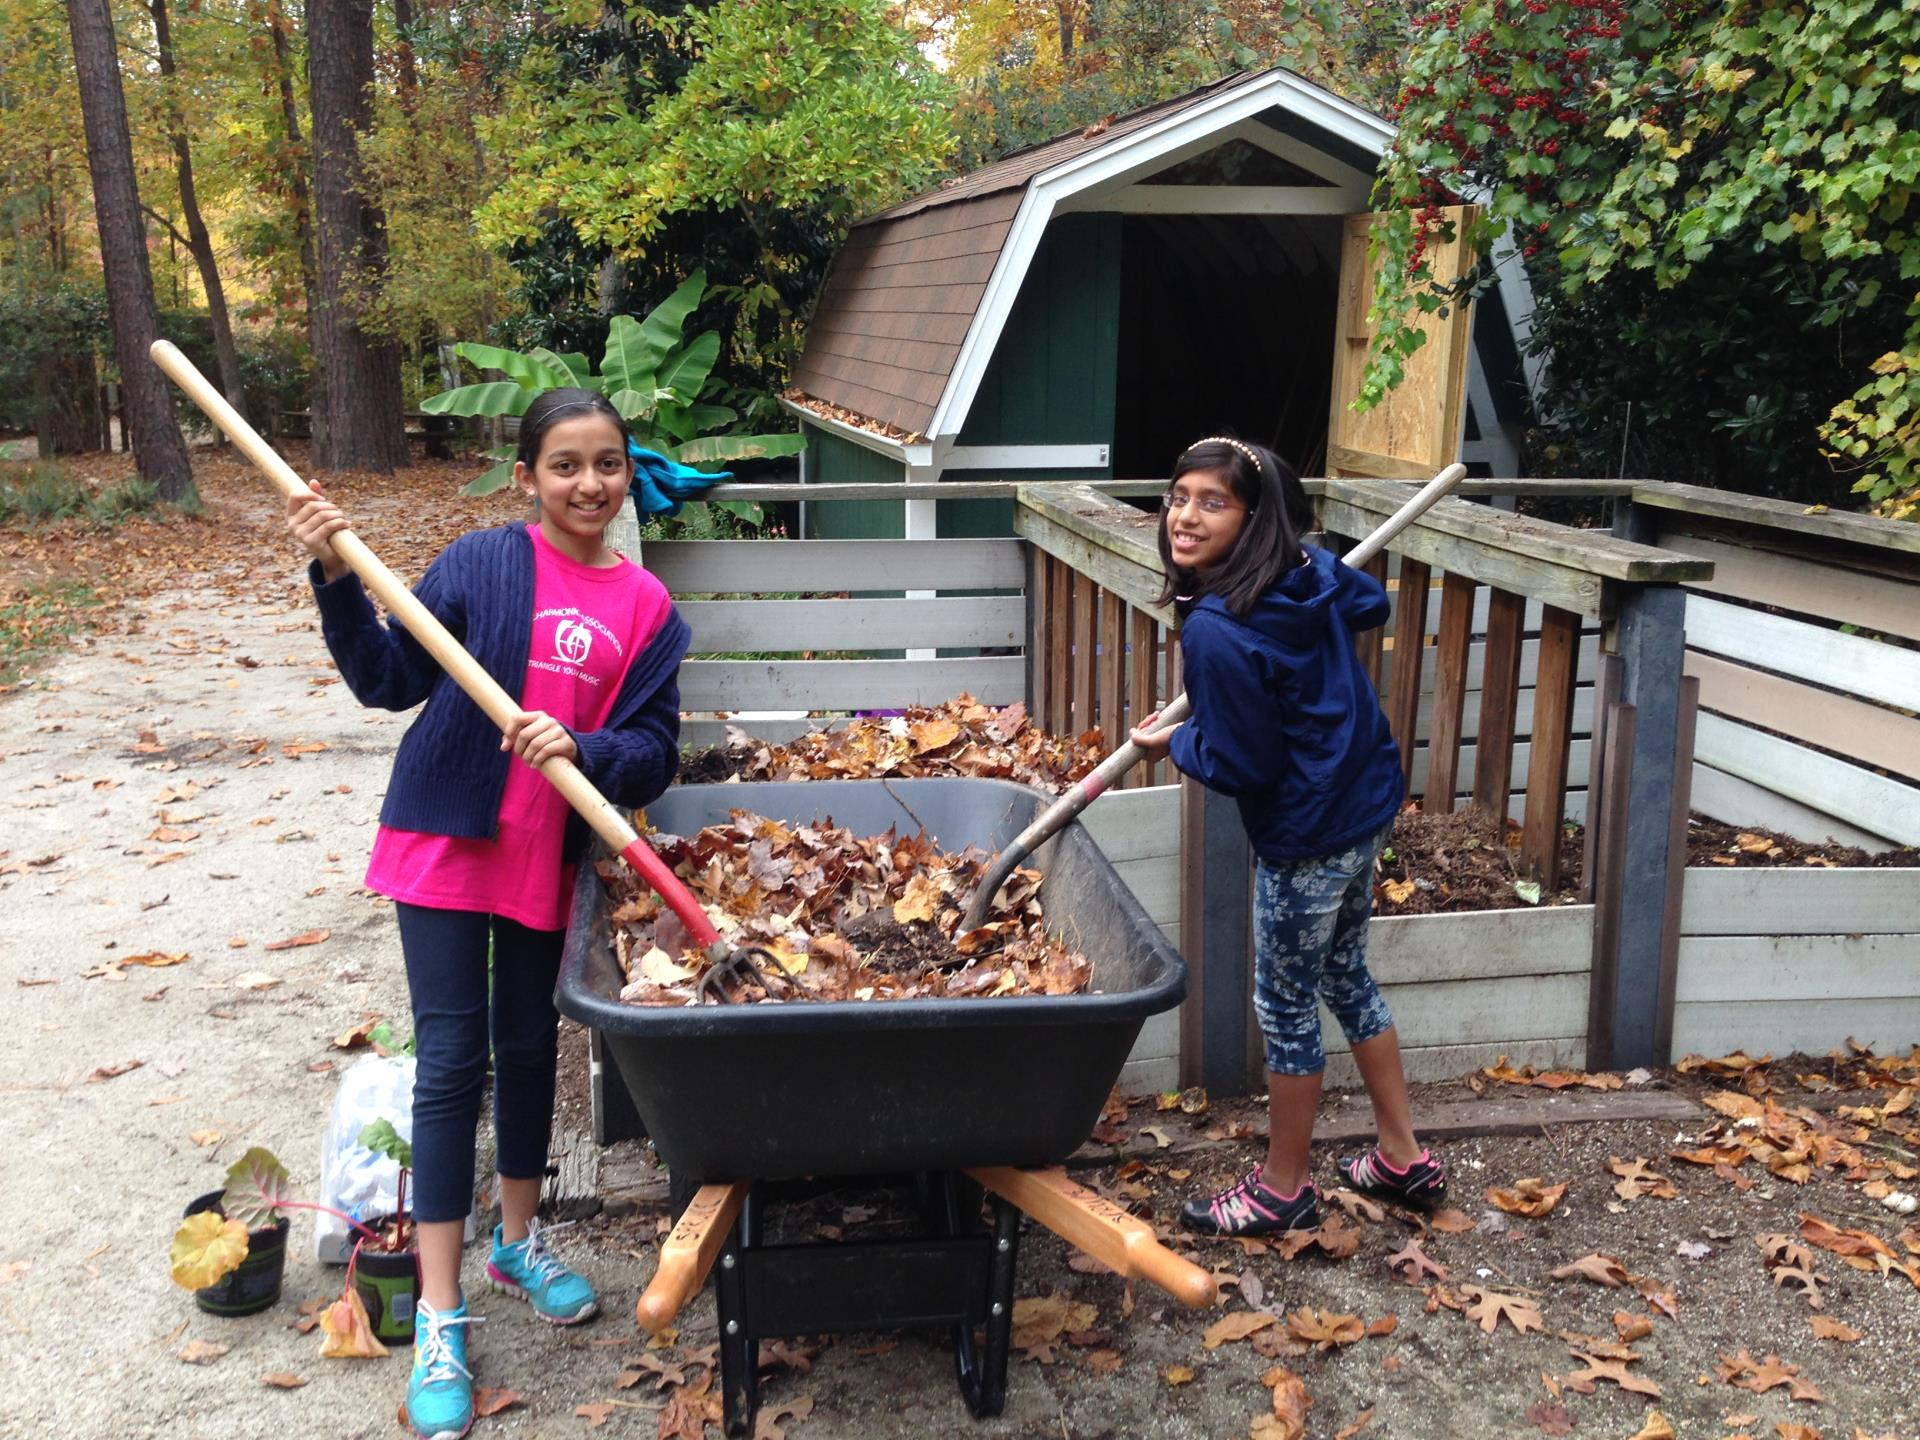 Explore recycling and composting projects through the Cary Green Neighborhood Program